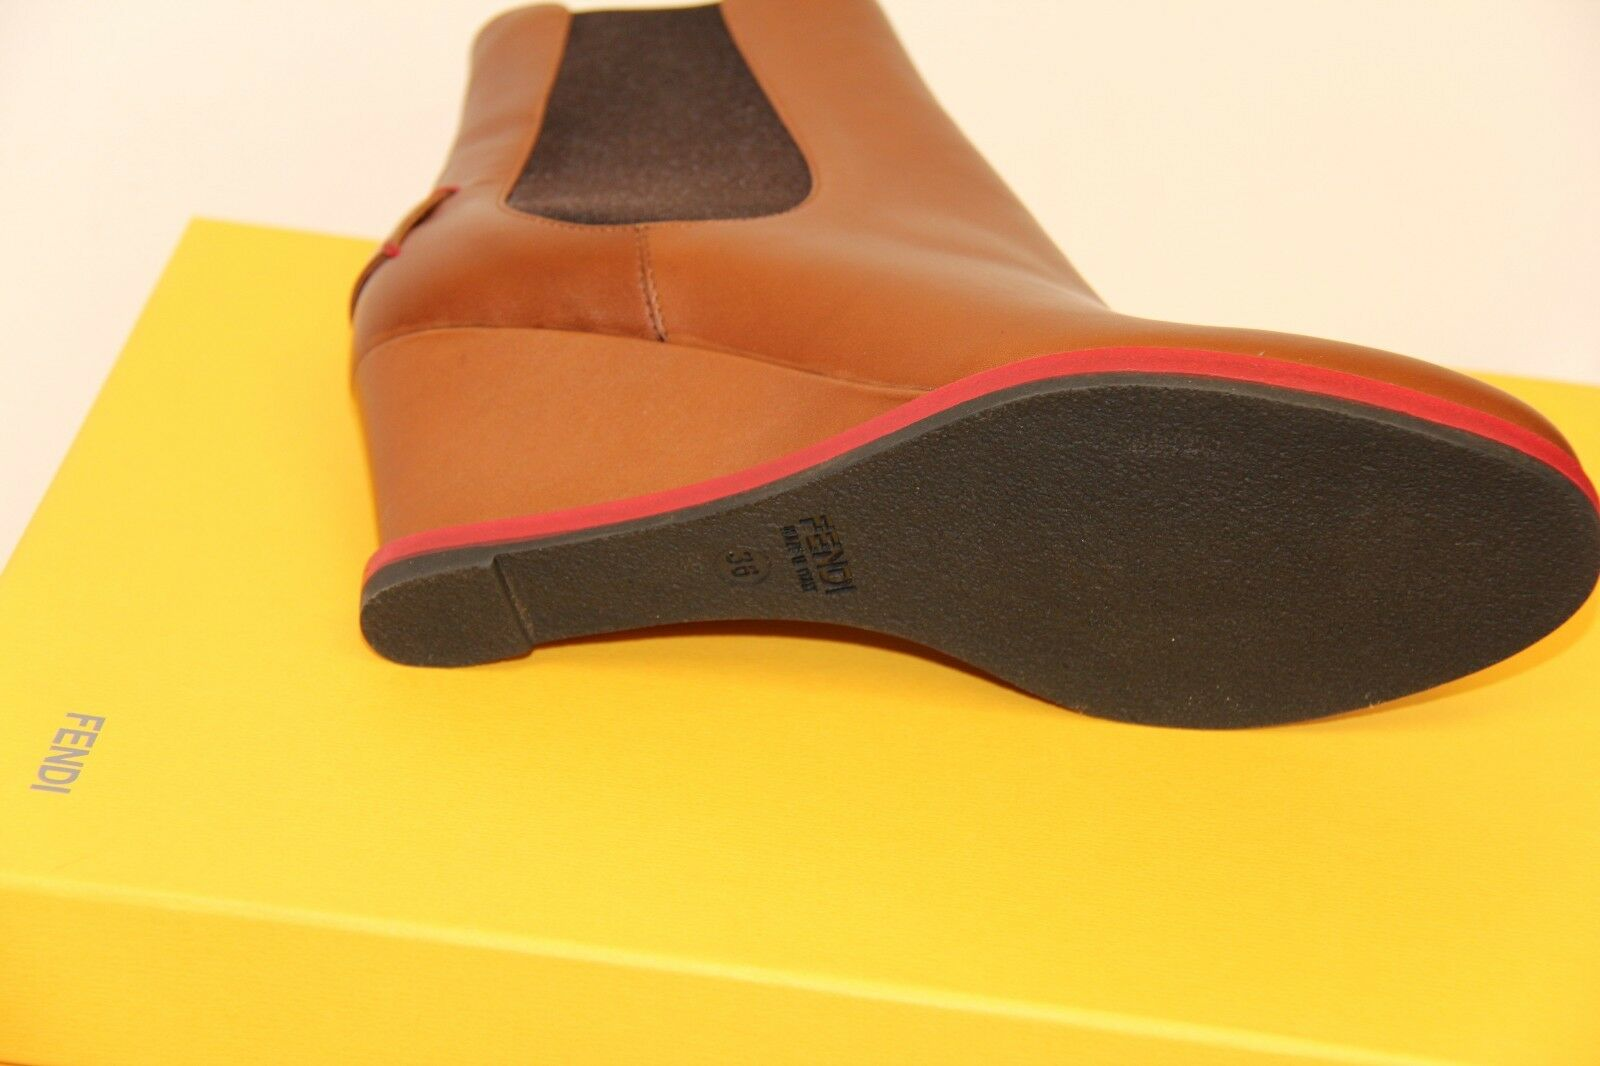 NIB FENDI 8T4116 Tronchetto Cuoio Sz 36.5 6.5 Ankle Ankle Ankle Wedge Leather Brown  765 96fa69